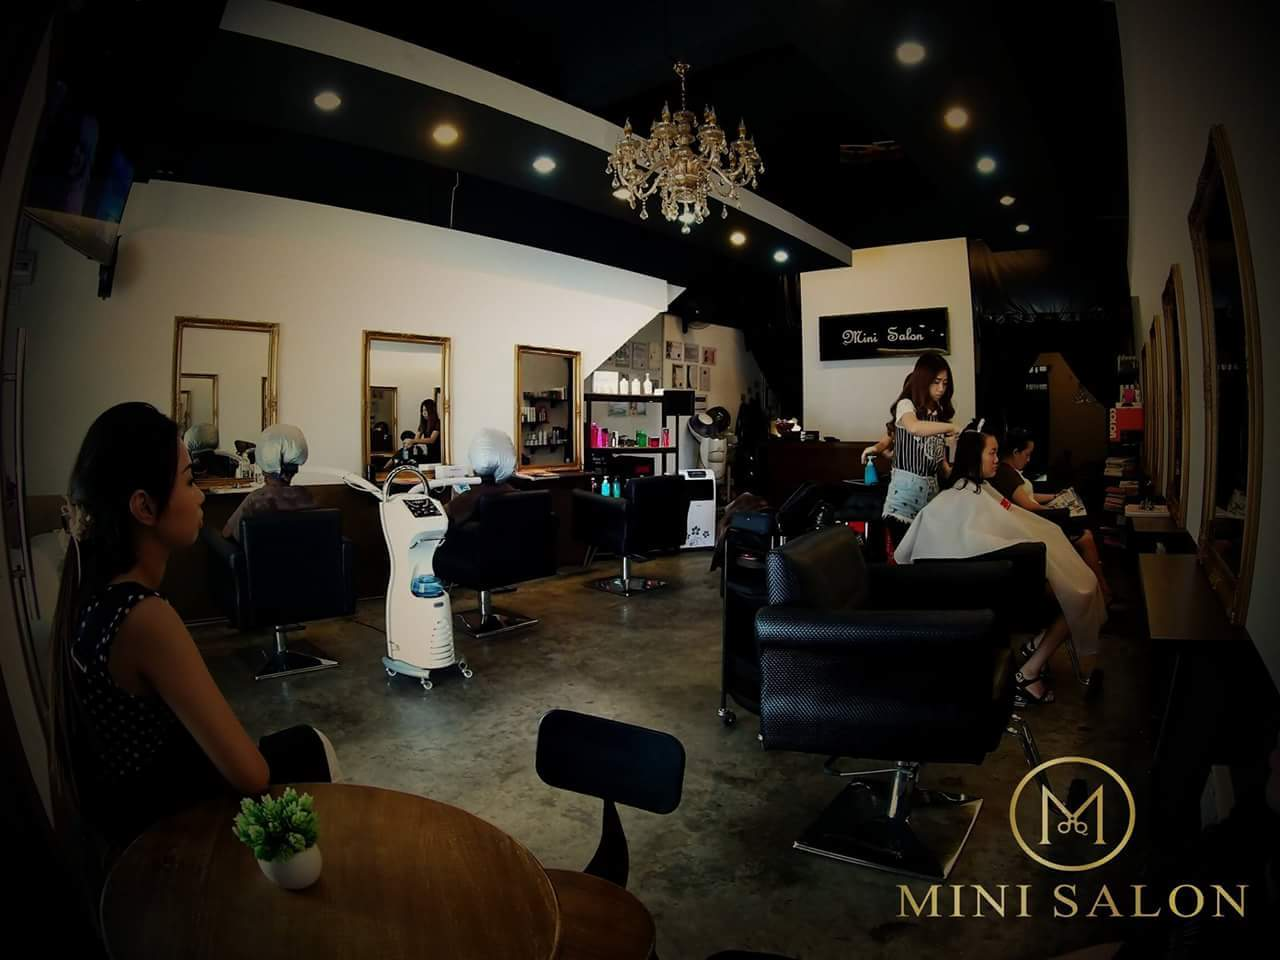 MINI salon